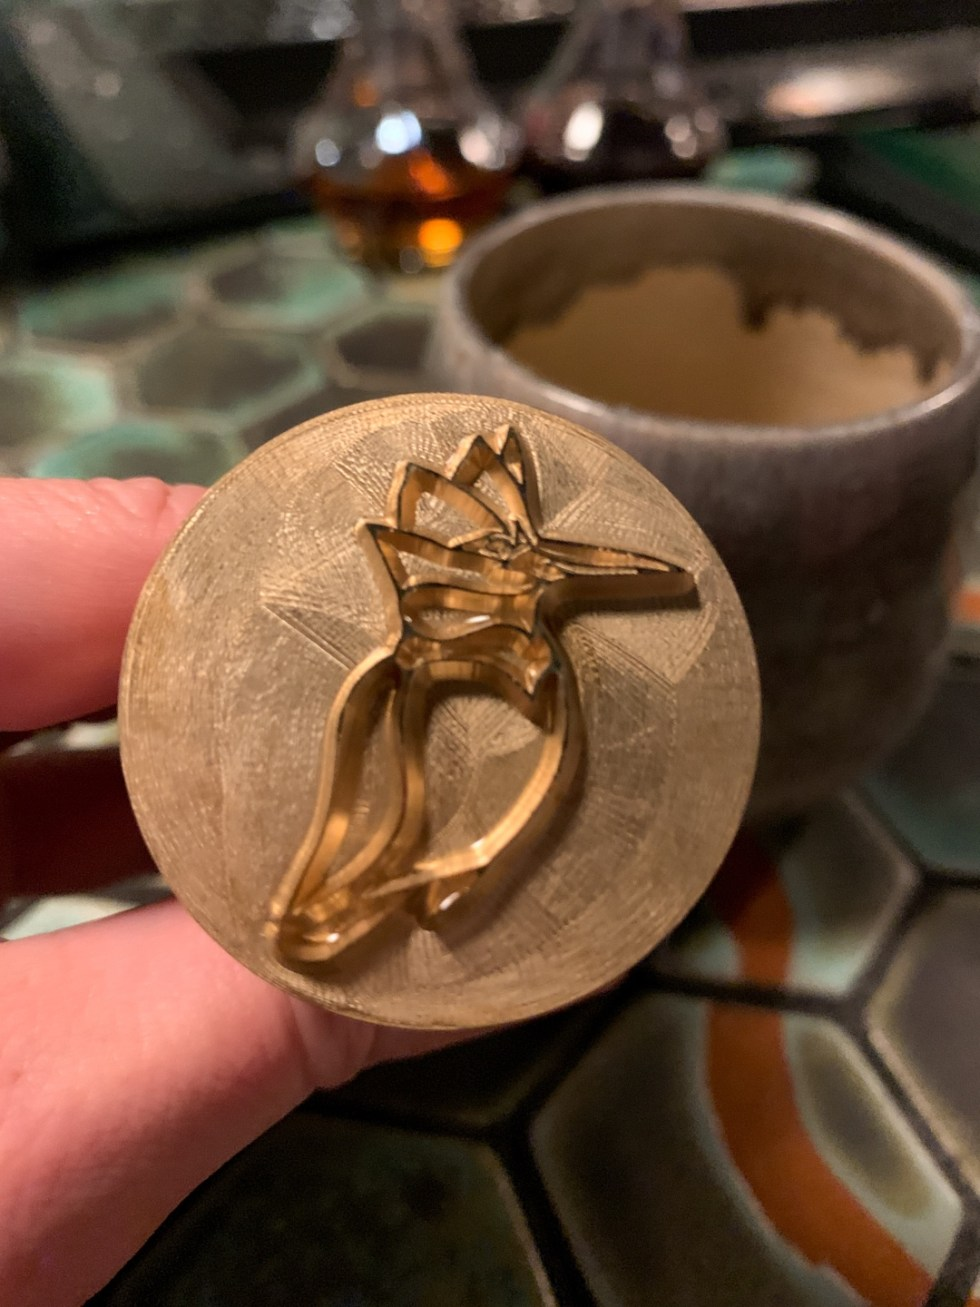 23 Awesome Things To Do in Durham - I'm Fixin' To - @imfixintoblog | Things to do in Durham by popular NC travel blog, I'm Fixin' To: image of a woman holding  lid with a metal bird decal on it.